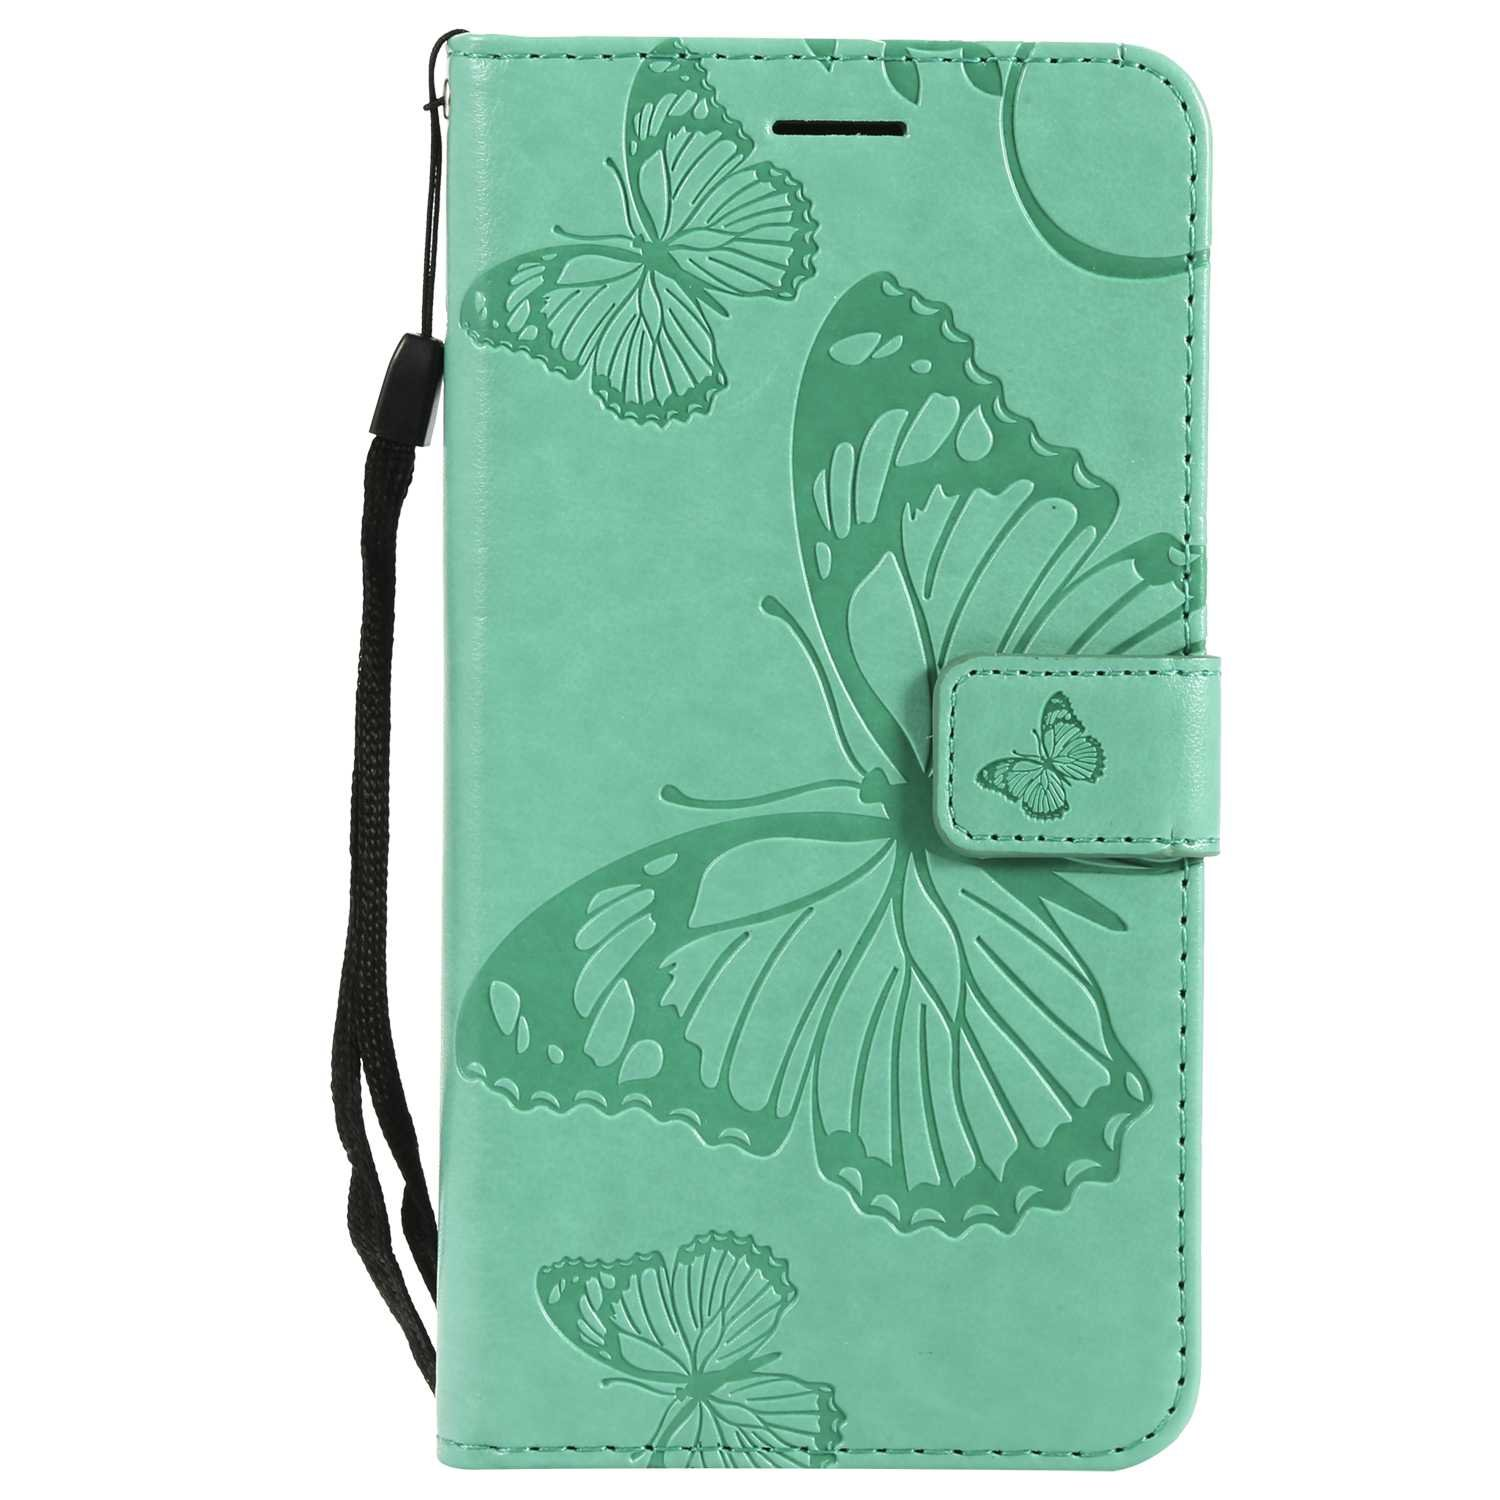 CUSKING Case for Samsung Galaxy J7 2016, Leather Flip Cover Magnetic Wallet Case with Butterfly Embossed Design, Case with Card Holders and Kickstand - Green